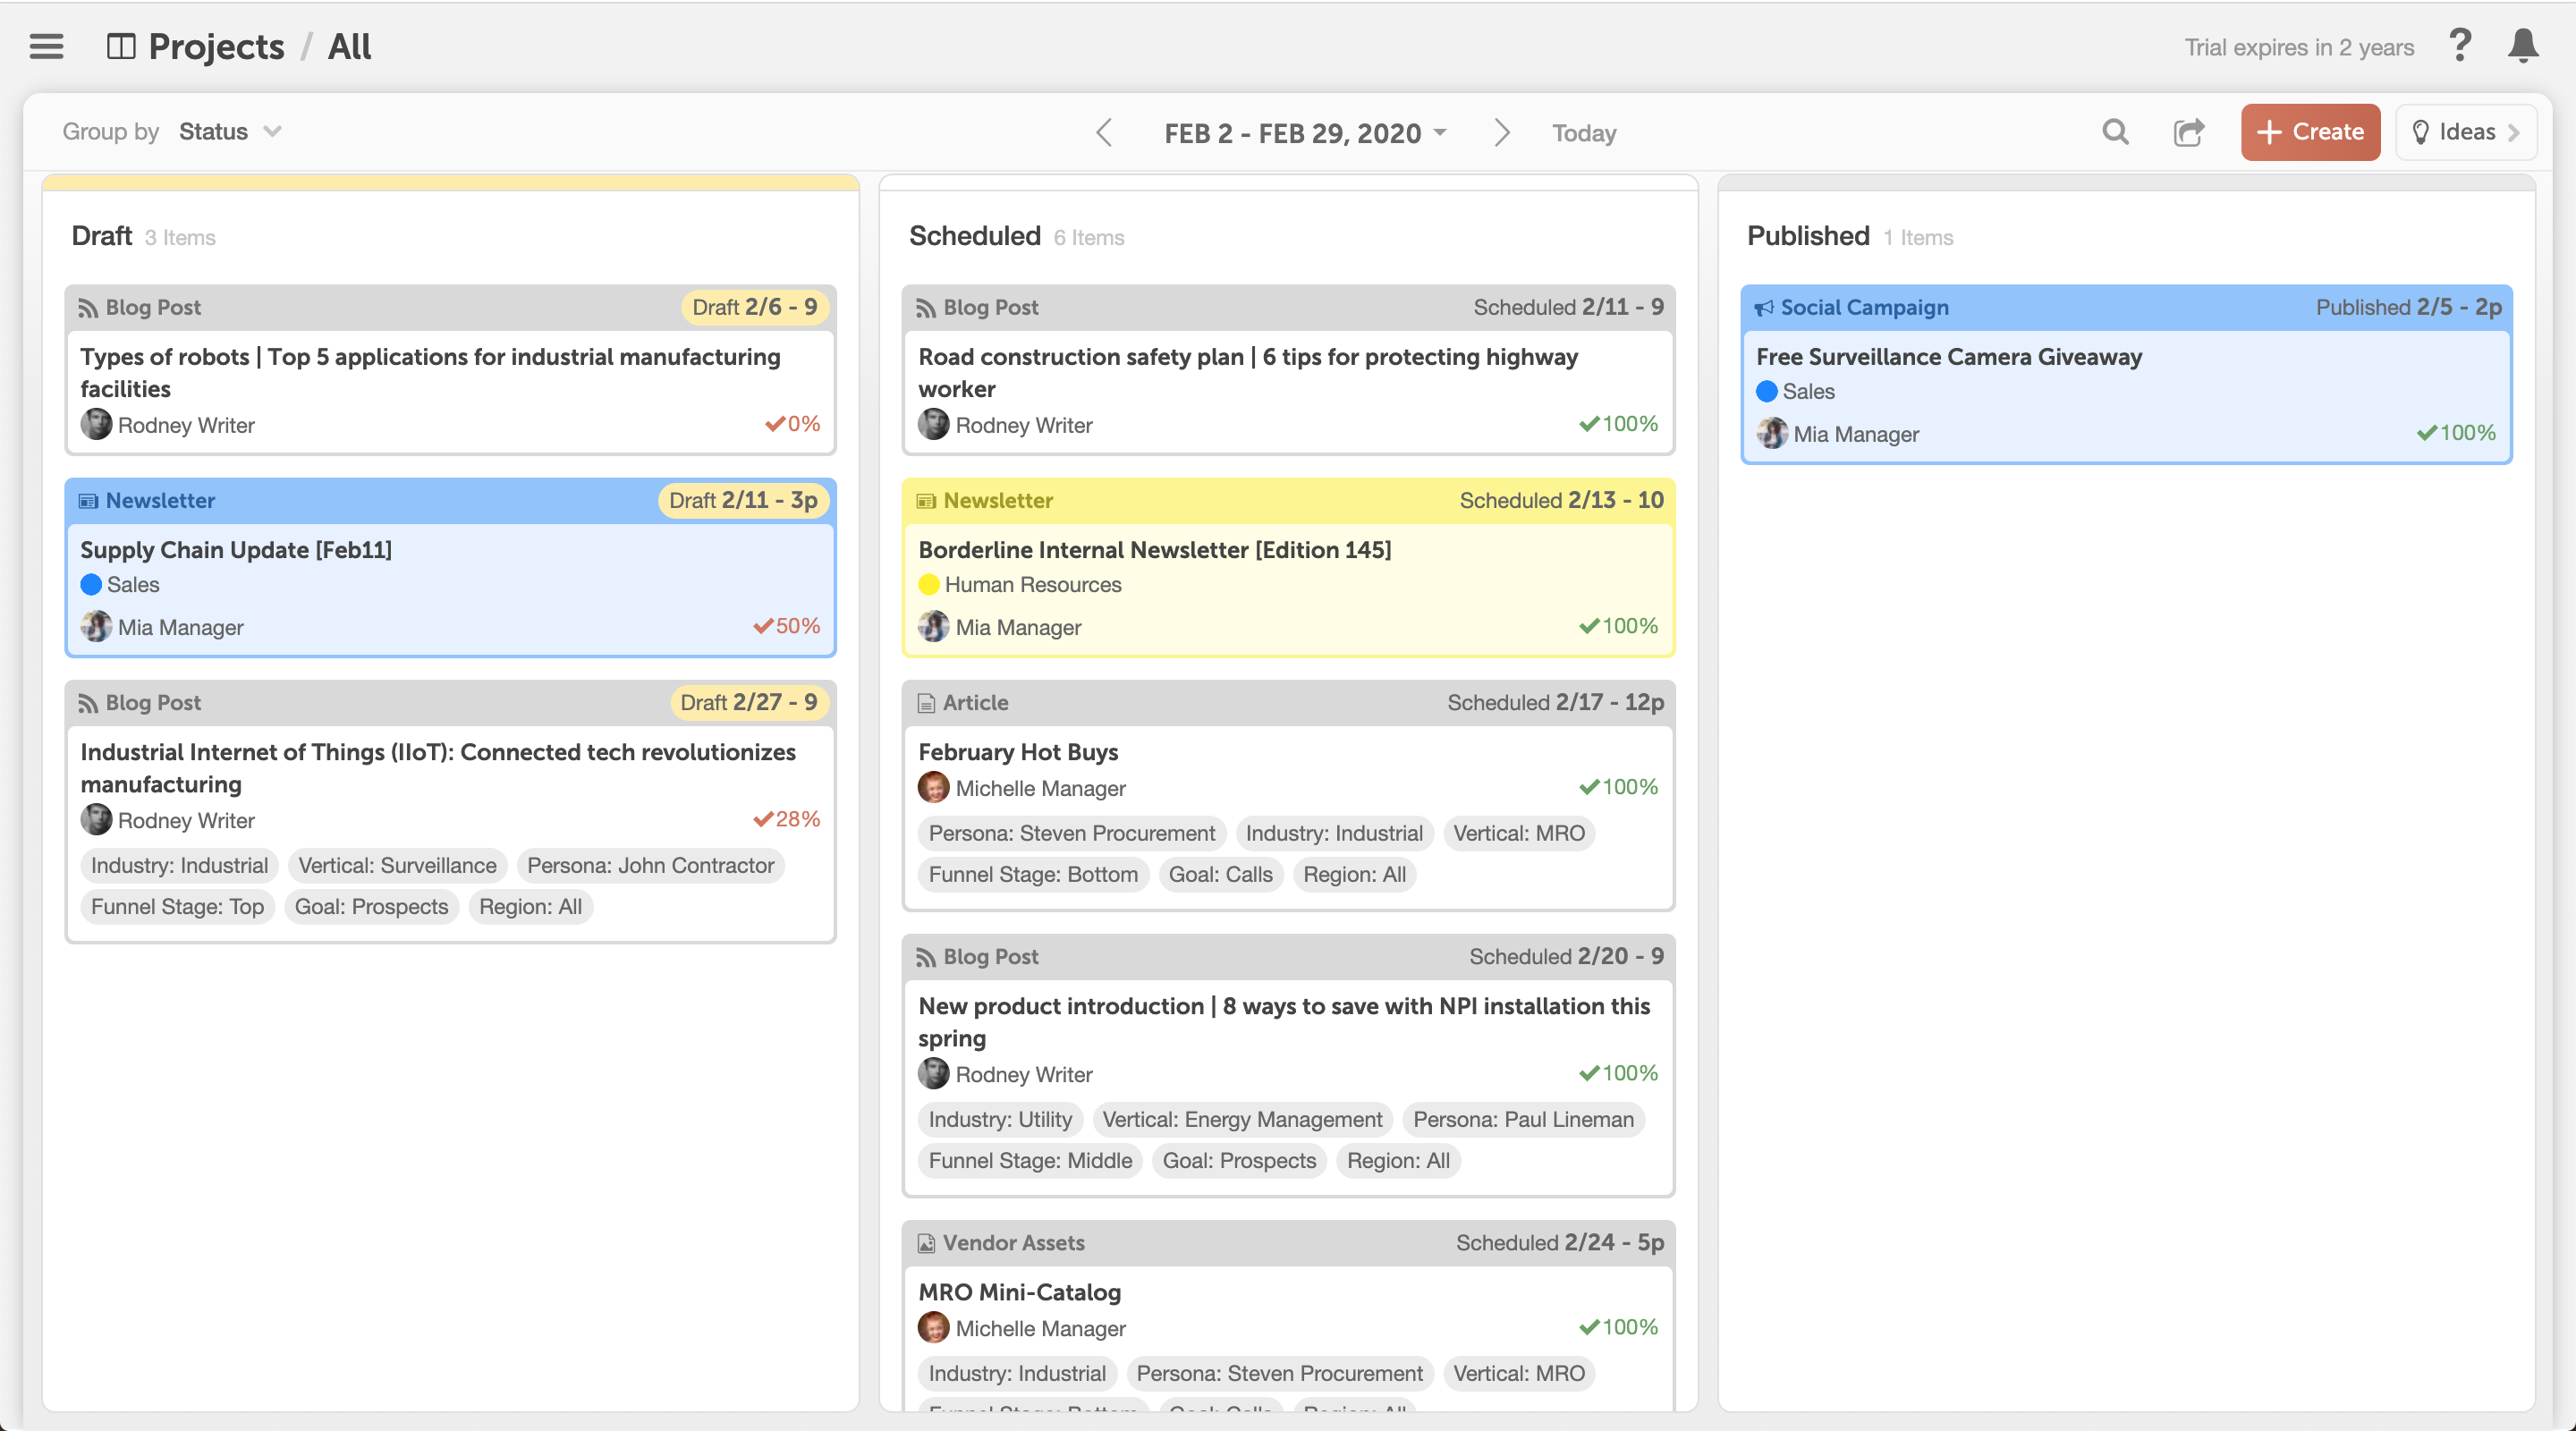 Keep a pulse on every project. Visualize your active projects in a Kanban board. Define statuses to describe the unique stages of your team's workflows. Review the state of your projects in real-time to identify roadblocks & monitor team progress.